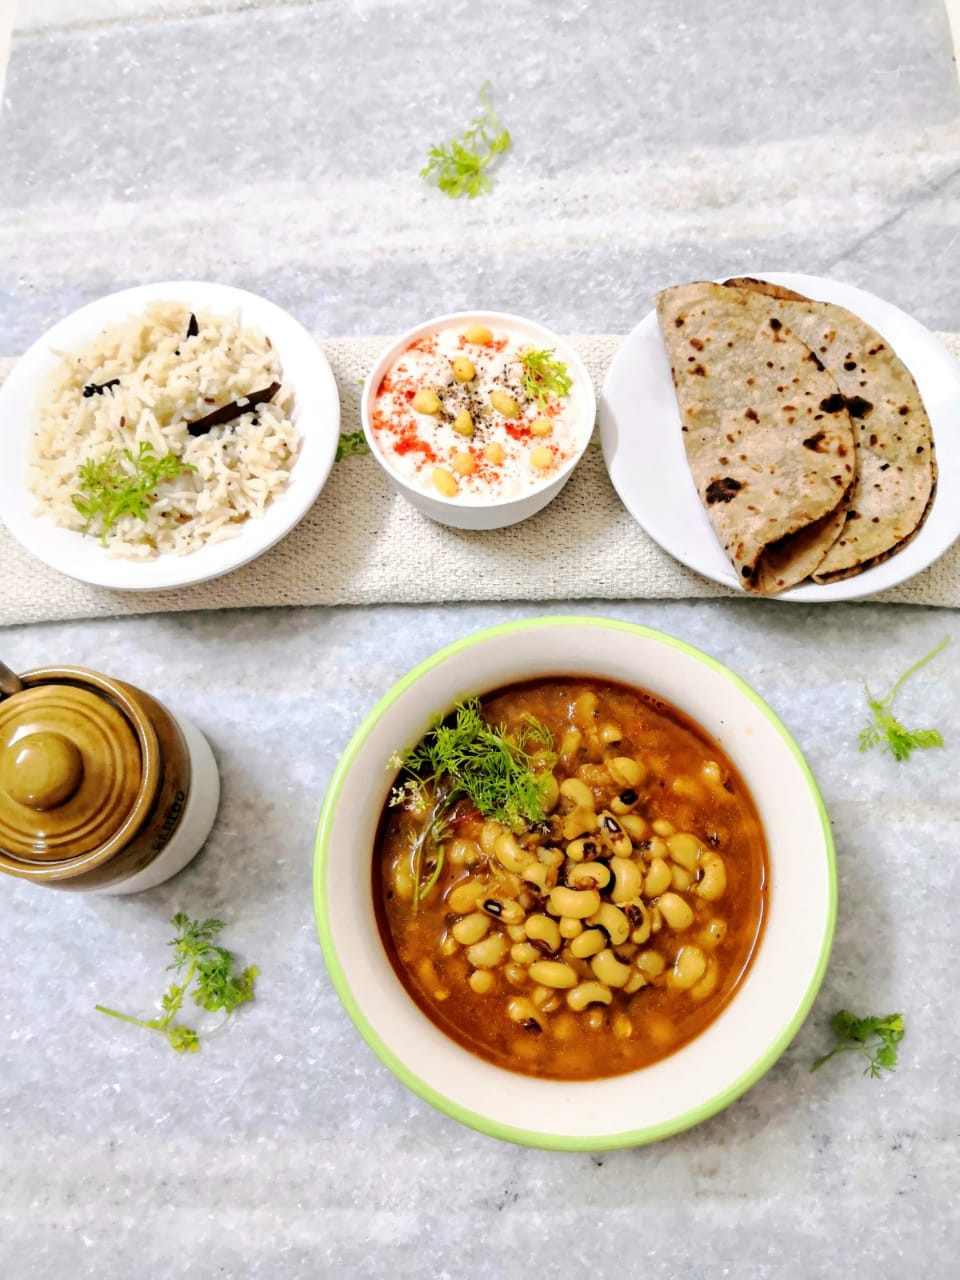 lobia curry recipe, rongi black eyes peas beans curry recipe, punjabi style curry recipes, traditional indian food recipe blog whiskmixstir, sheetal jandial, indian meal ideas recipes